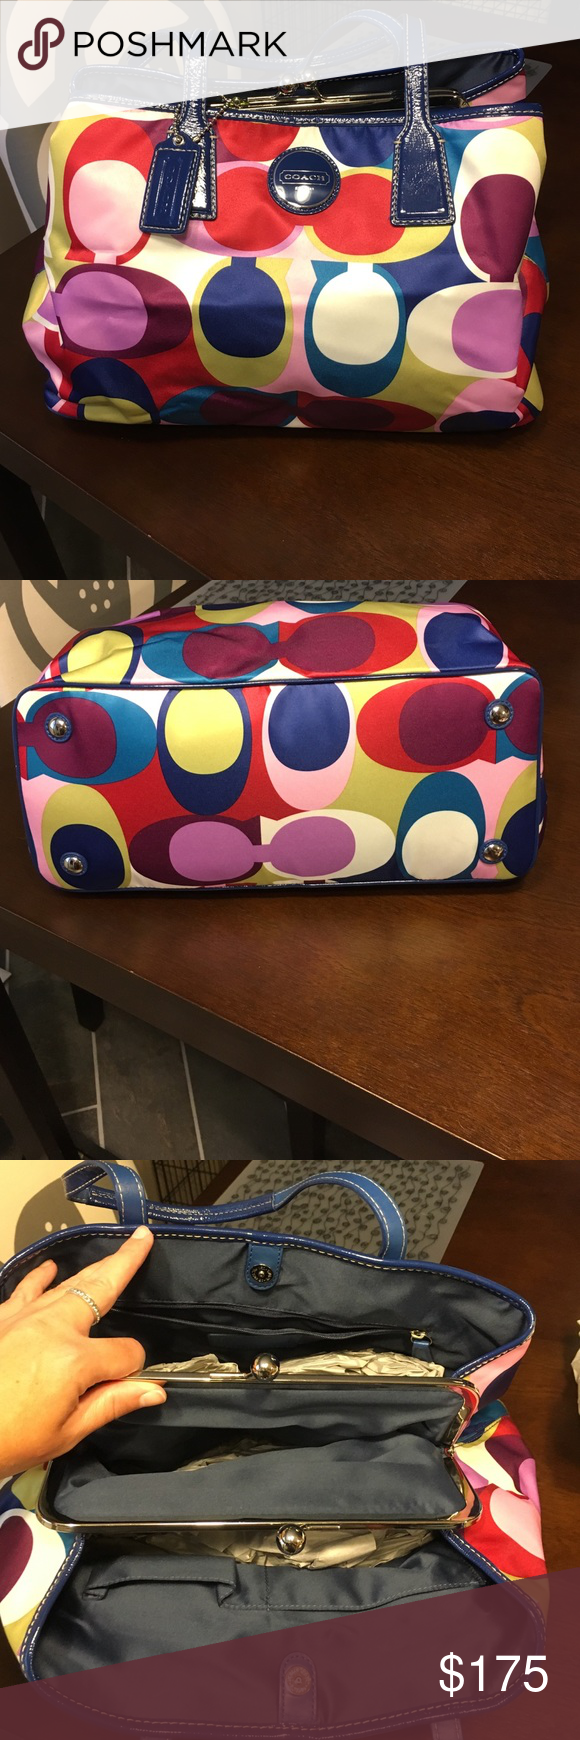 Large Authentic Coach Purse New without tags and in excellent condition large authentic multicolored coach purse. Features three compartments on the inside all of which have snap closures. Coach Bags Totes